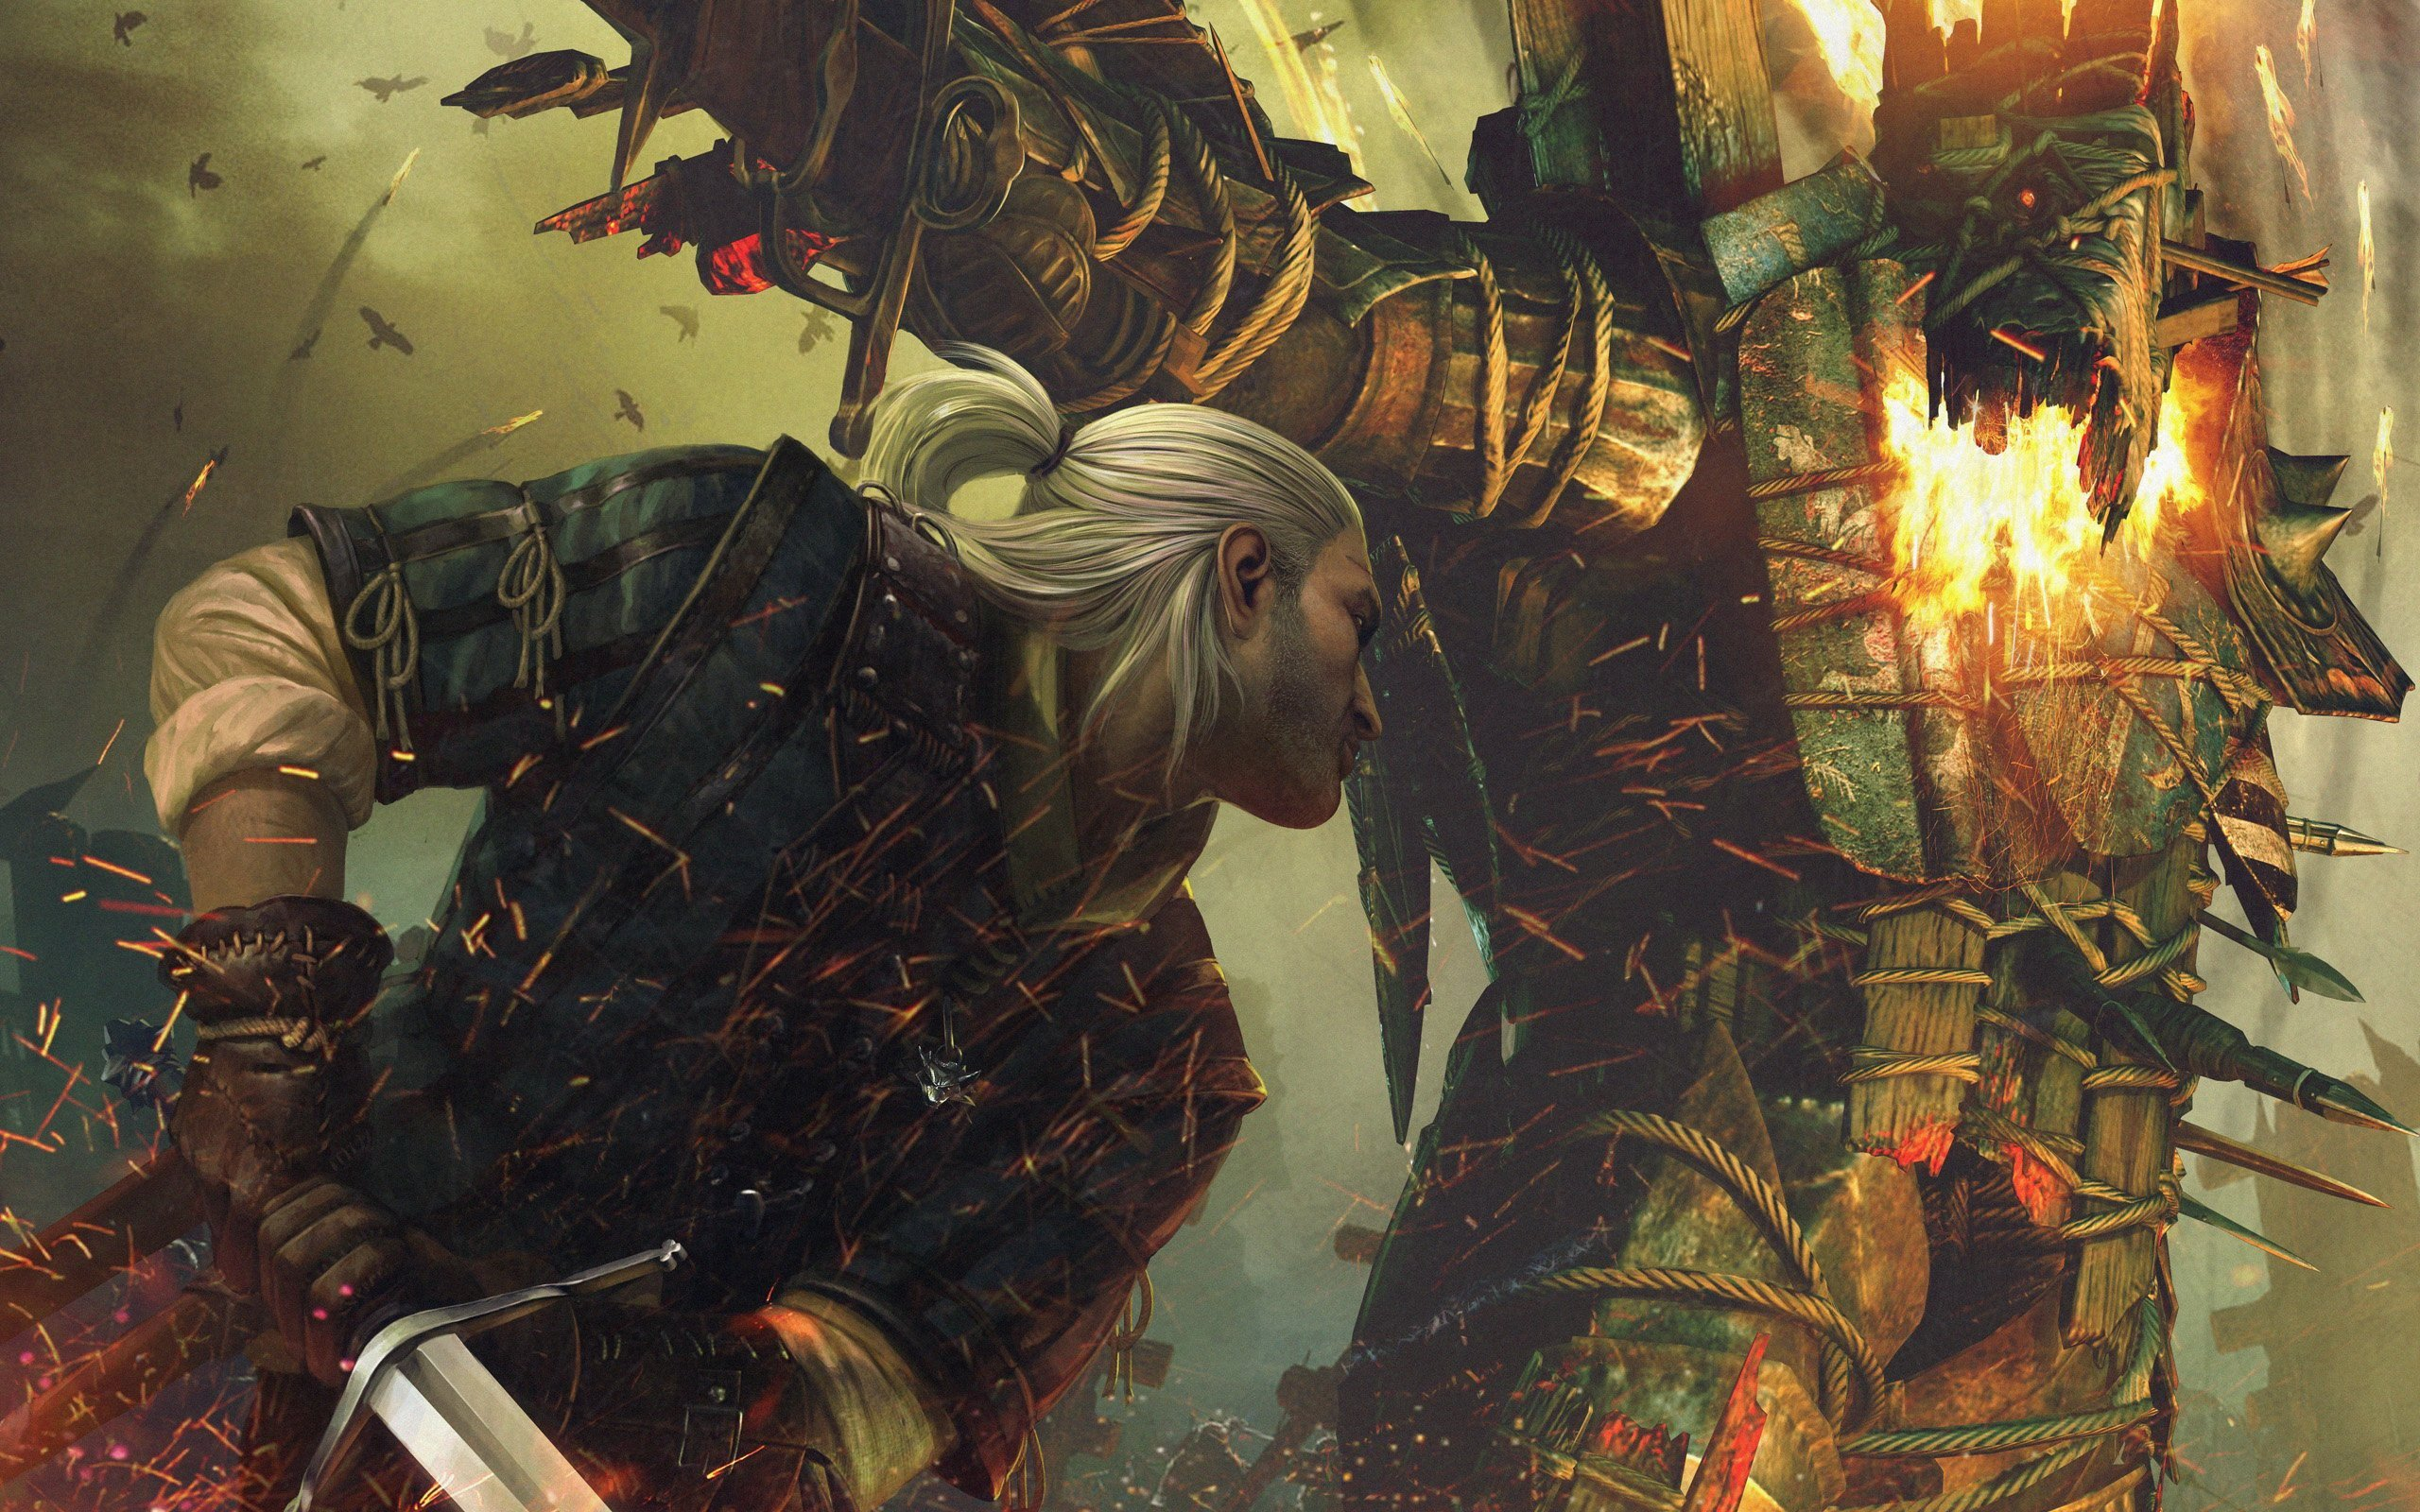 The Witcher 2 Assassins Of Kings HD Wallpaper Background Image 2560x1600